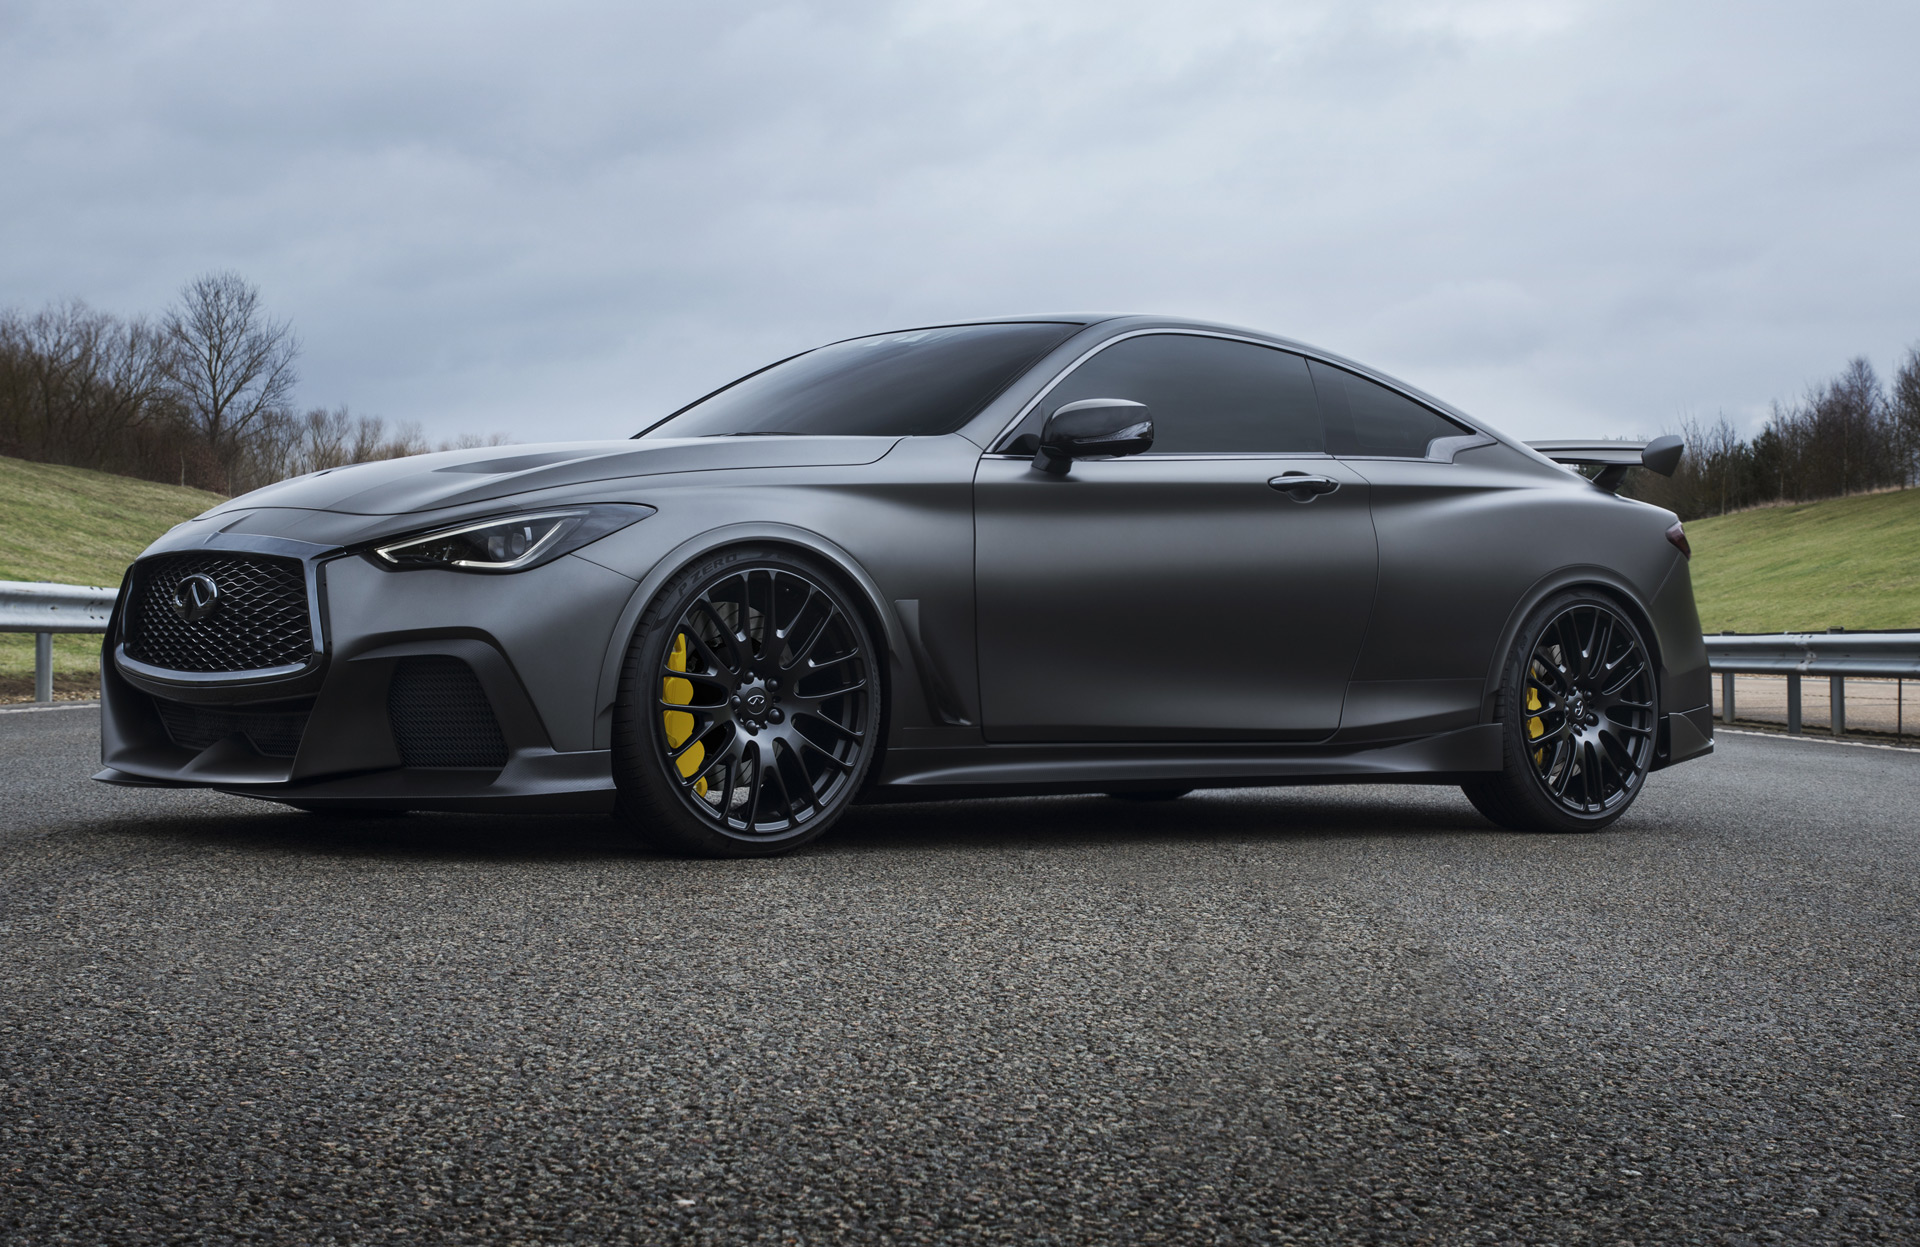 2018 Hellcat >> Infiniti's Q60 Project Black S will wear special-made Pirelli tires